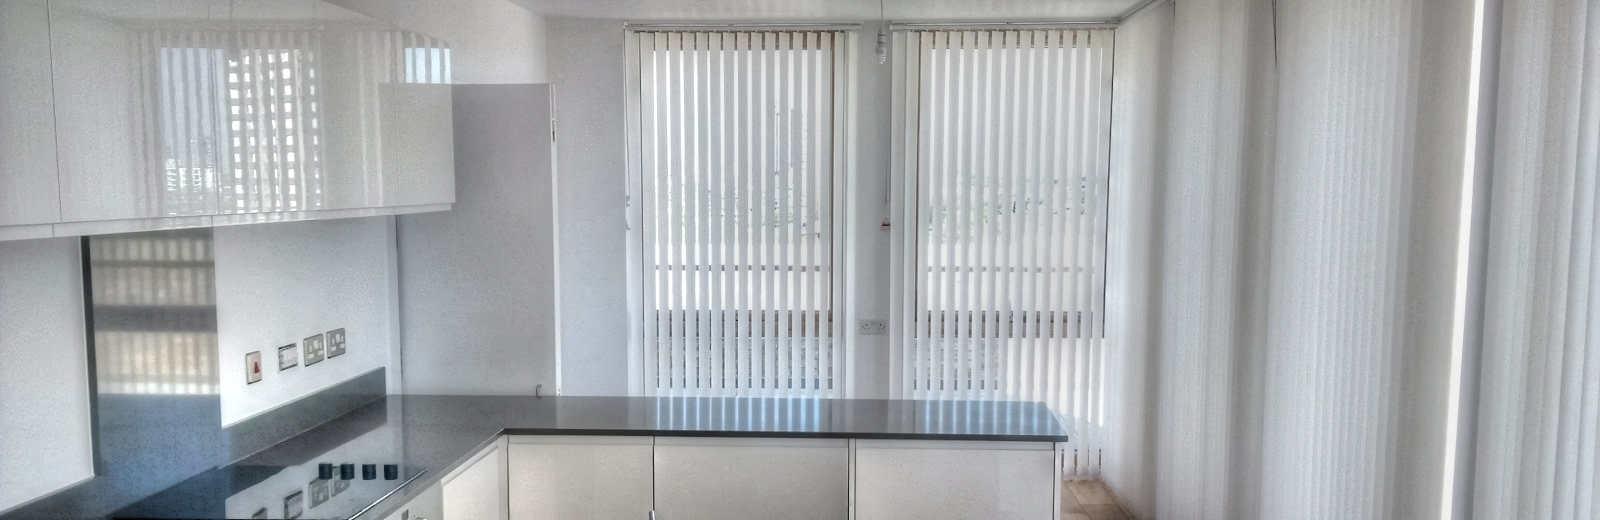 6000 Series Vertical Blinds